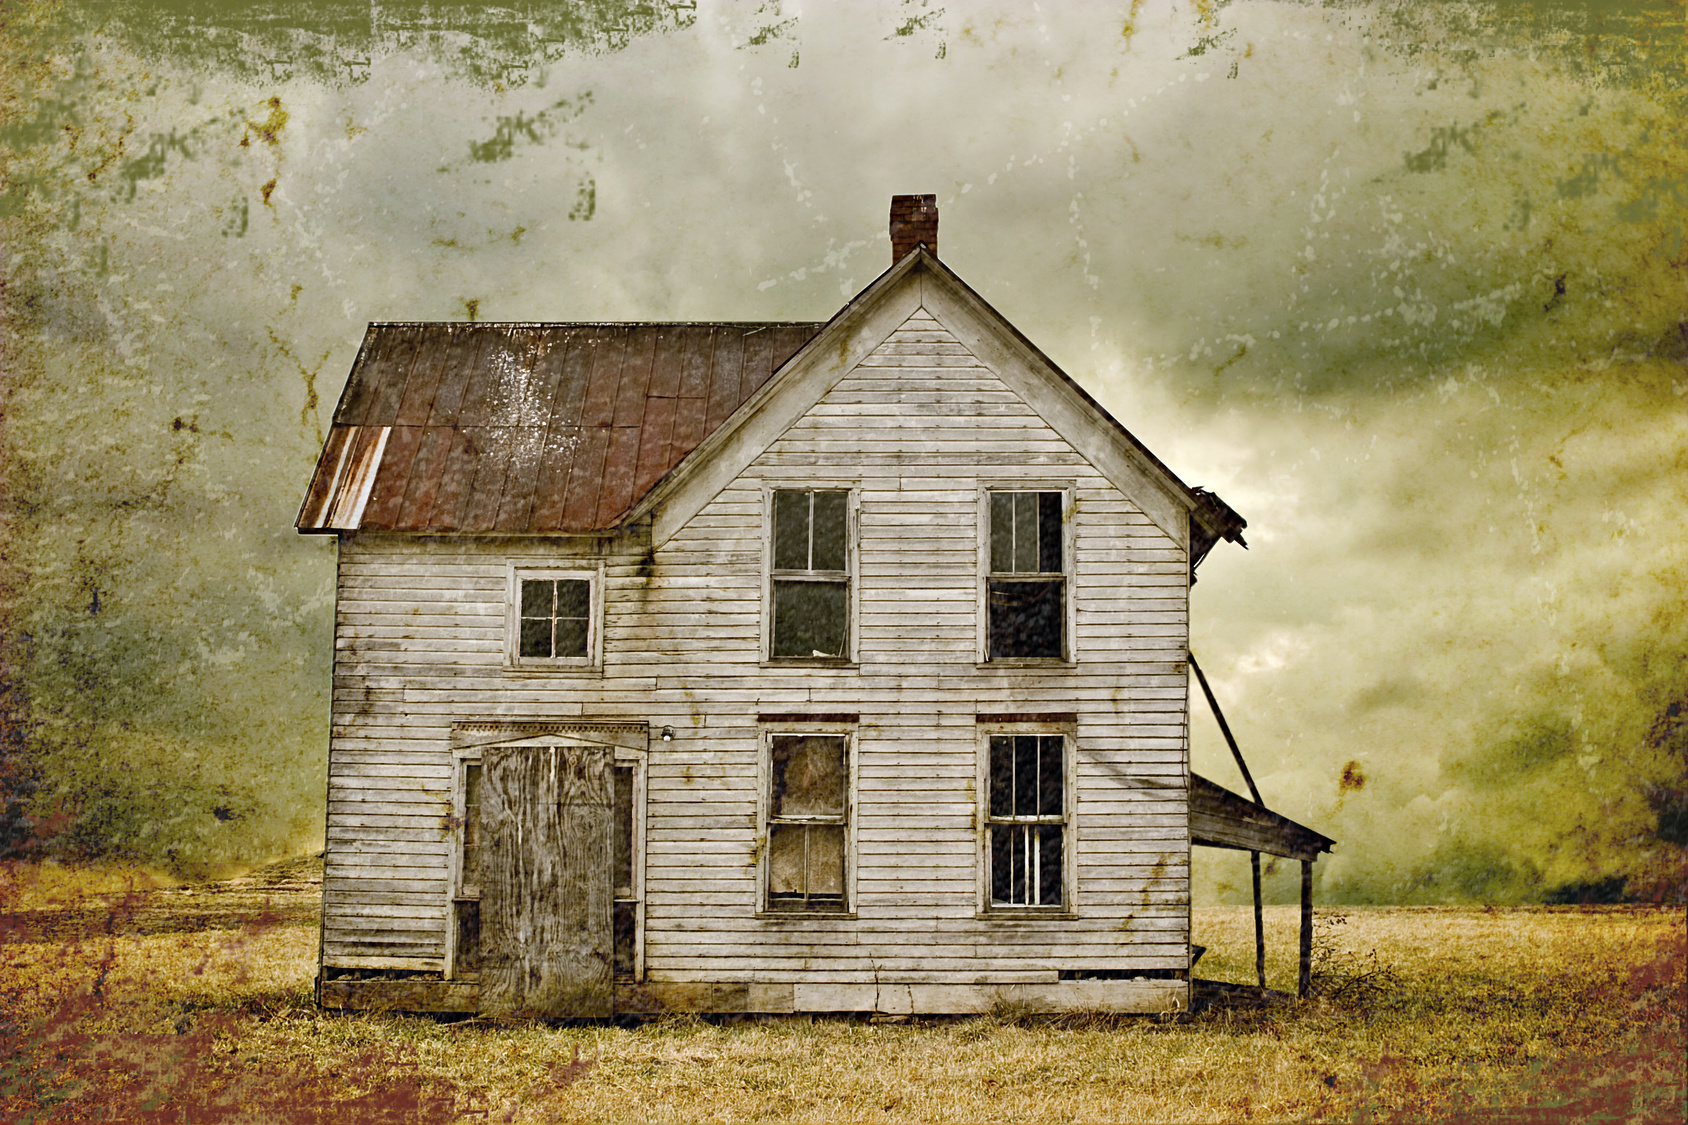 It is an image of Old Fashioned Abandoned House Drawing